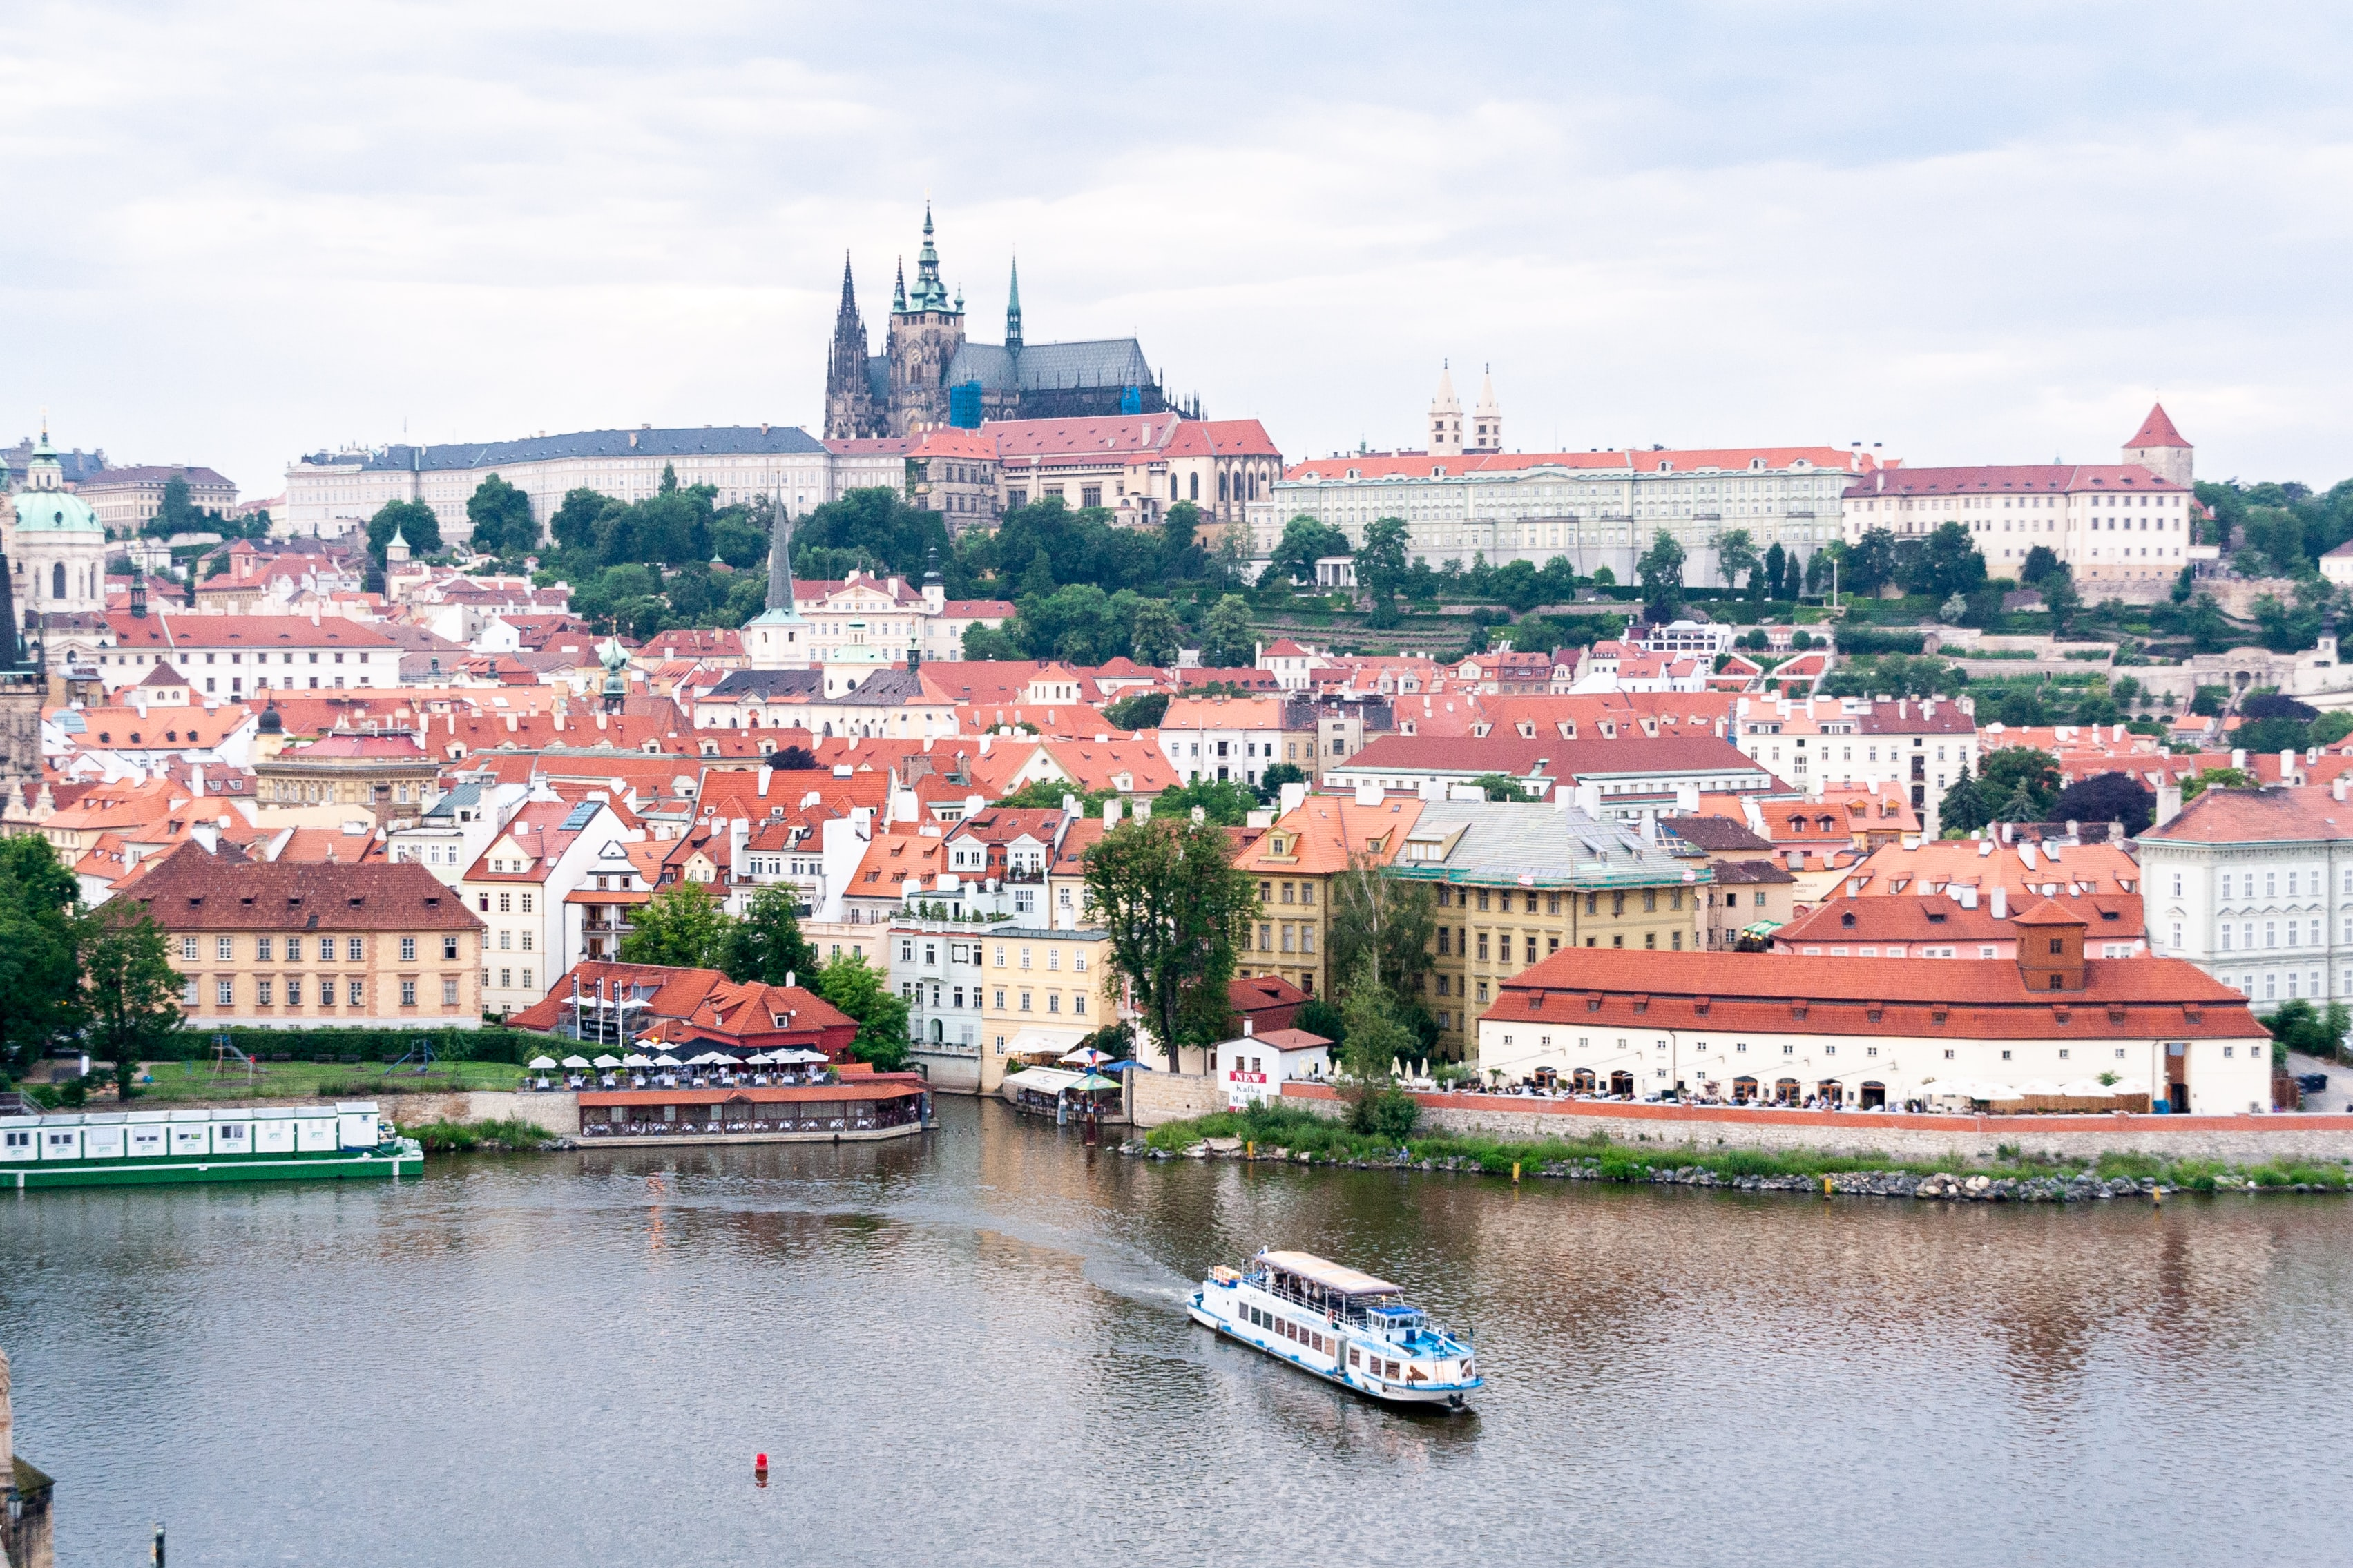 Czech Republic among the top 10 countries to invest in post-COVID